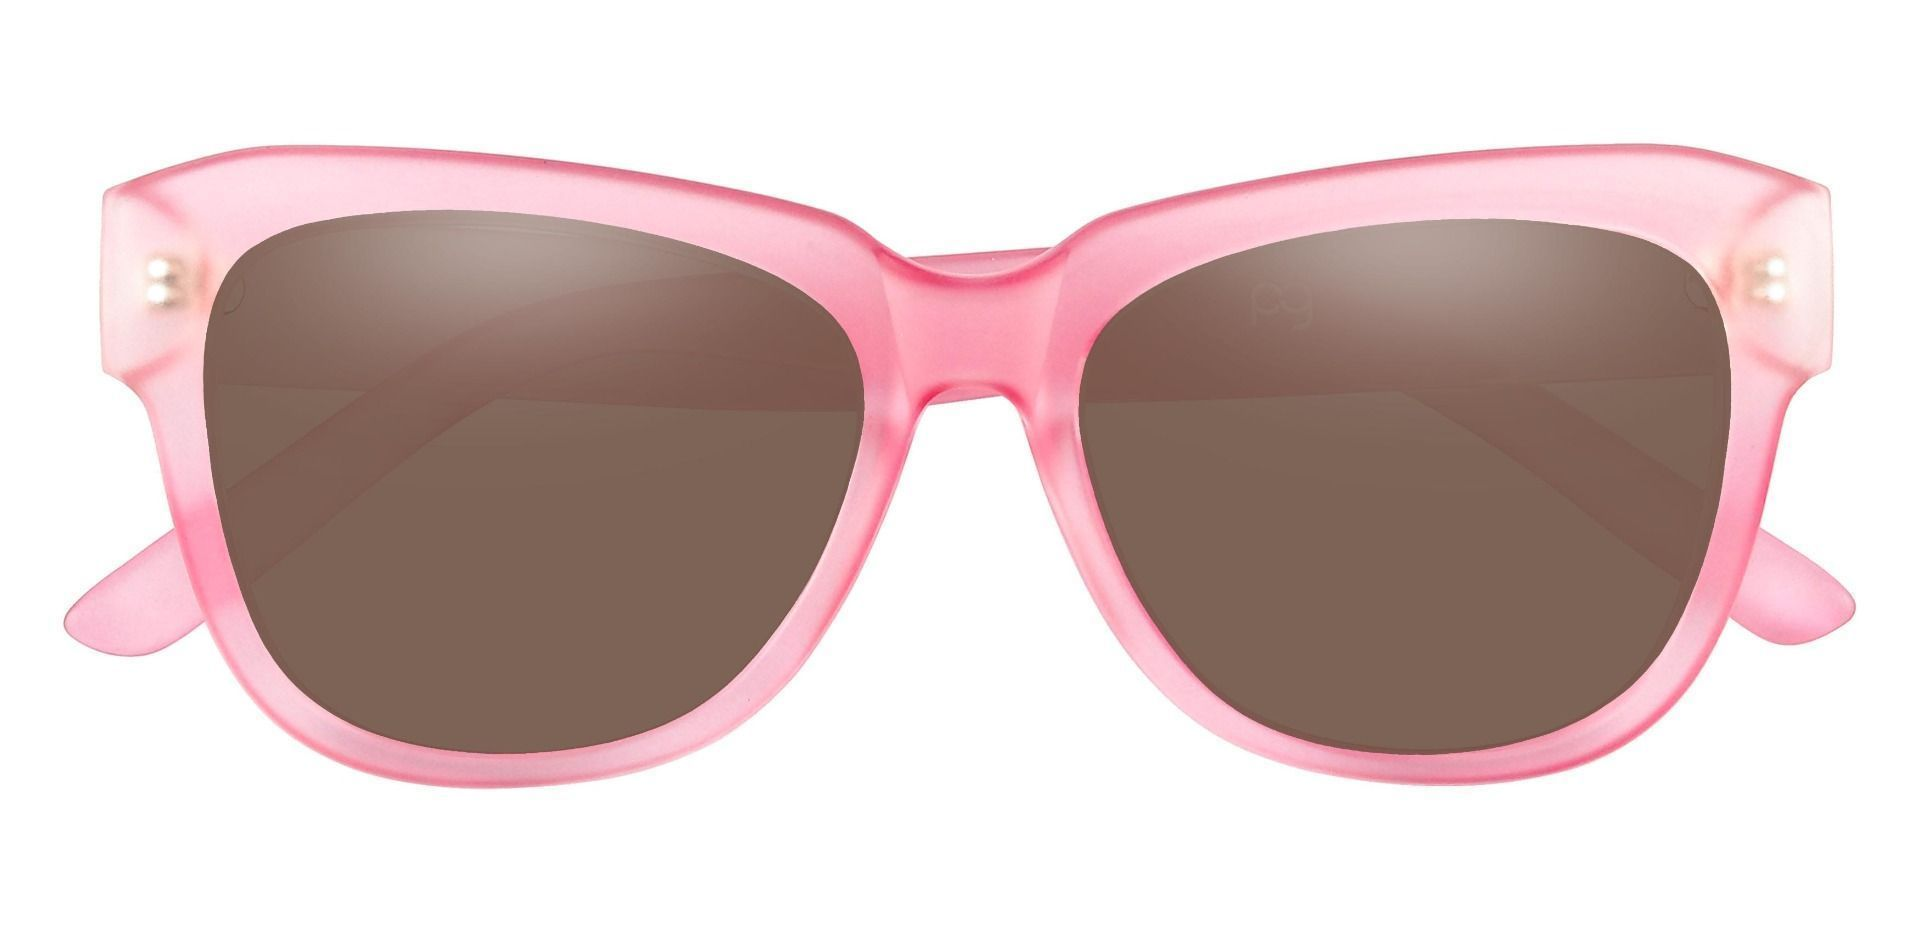 Gina Cat-Eye Lined Bifocal Sunglasses - Pink Frame With Brown Lenses